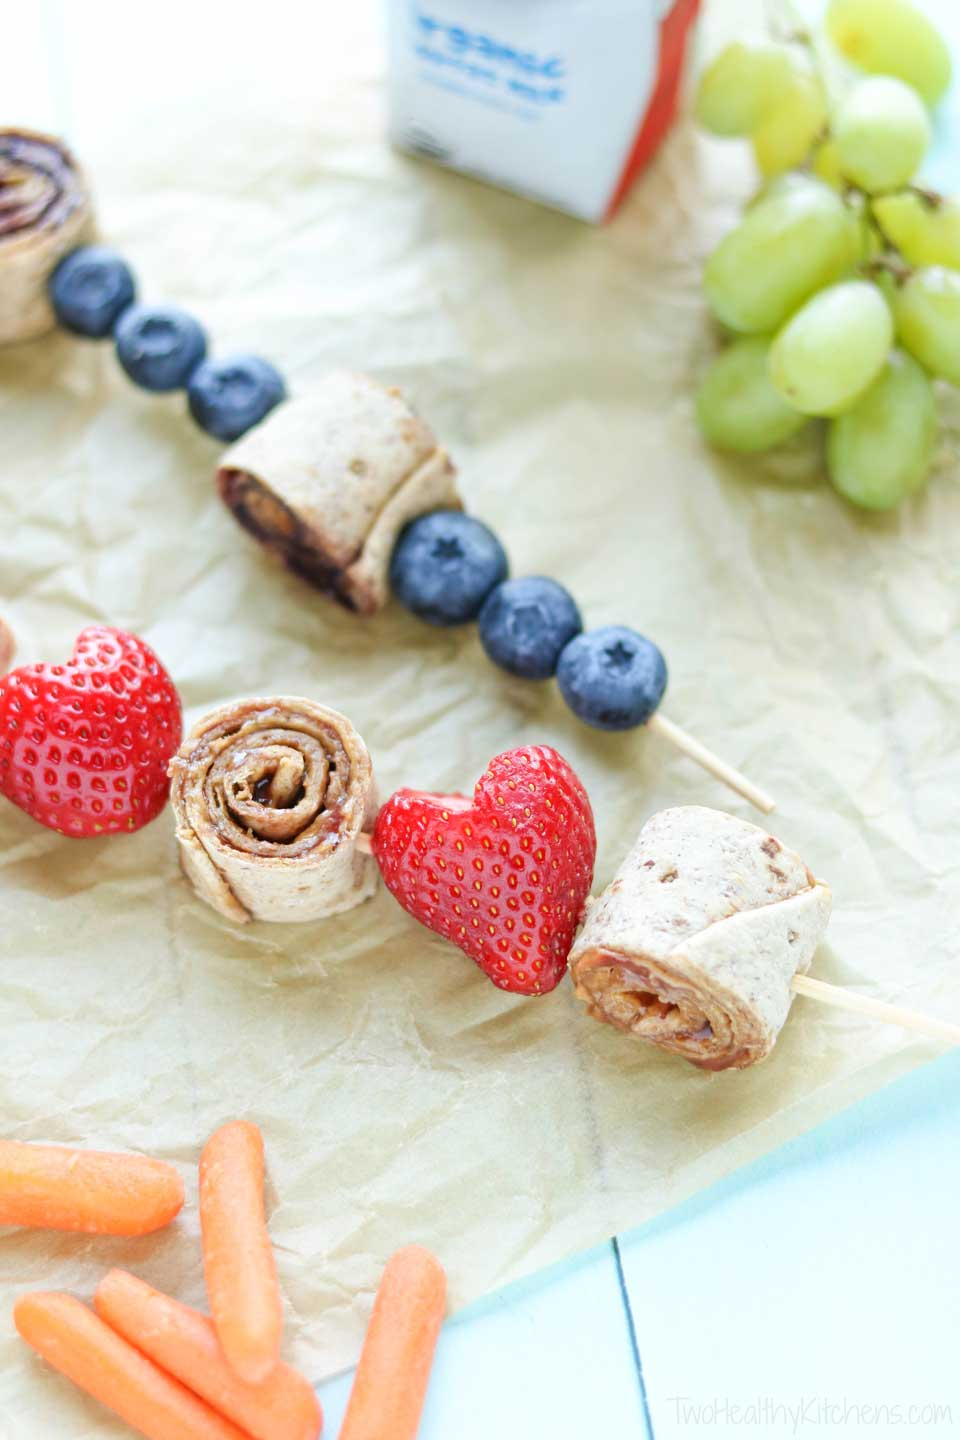 Healthy school lunch recipes don't have to be boring! Reinvent that tried-and-true peanut butter and jelly sandwich as a PB&J roll-up! Thread those cute sandwich pinwheels onto a skewer with nutritious fruit, and in just minutes you've got a creative lunch box meal they'll love!